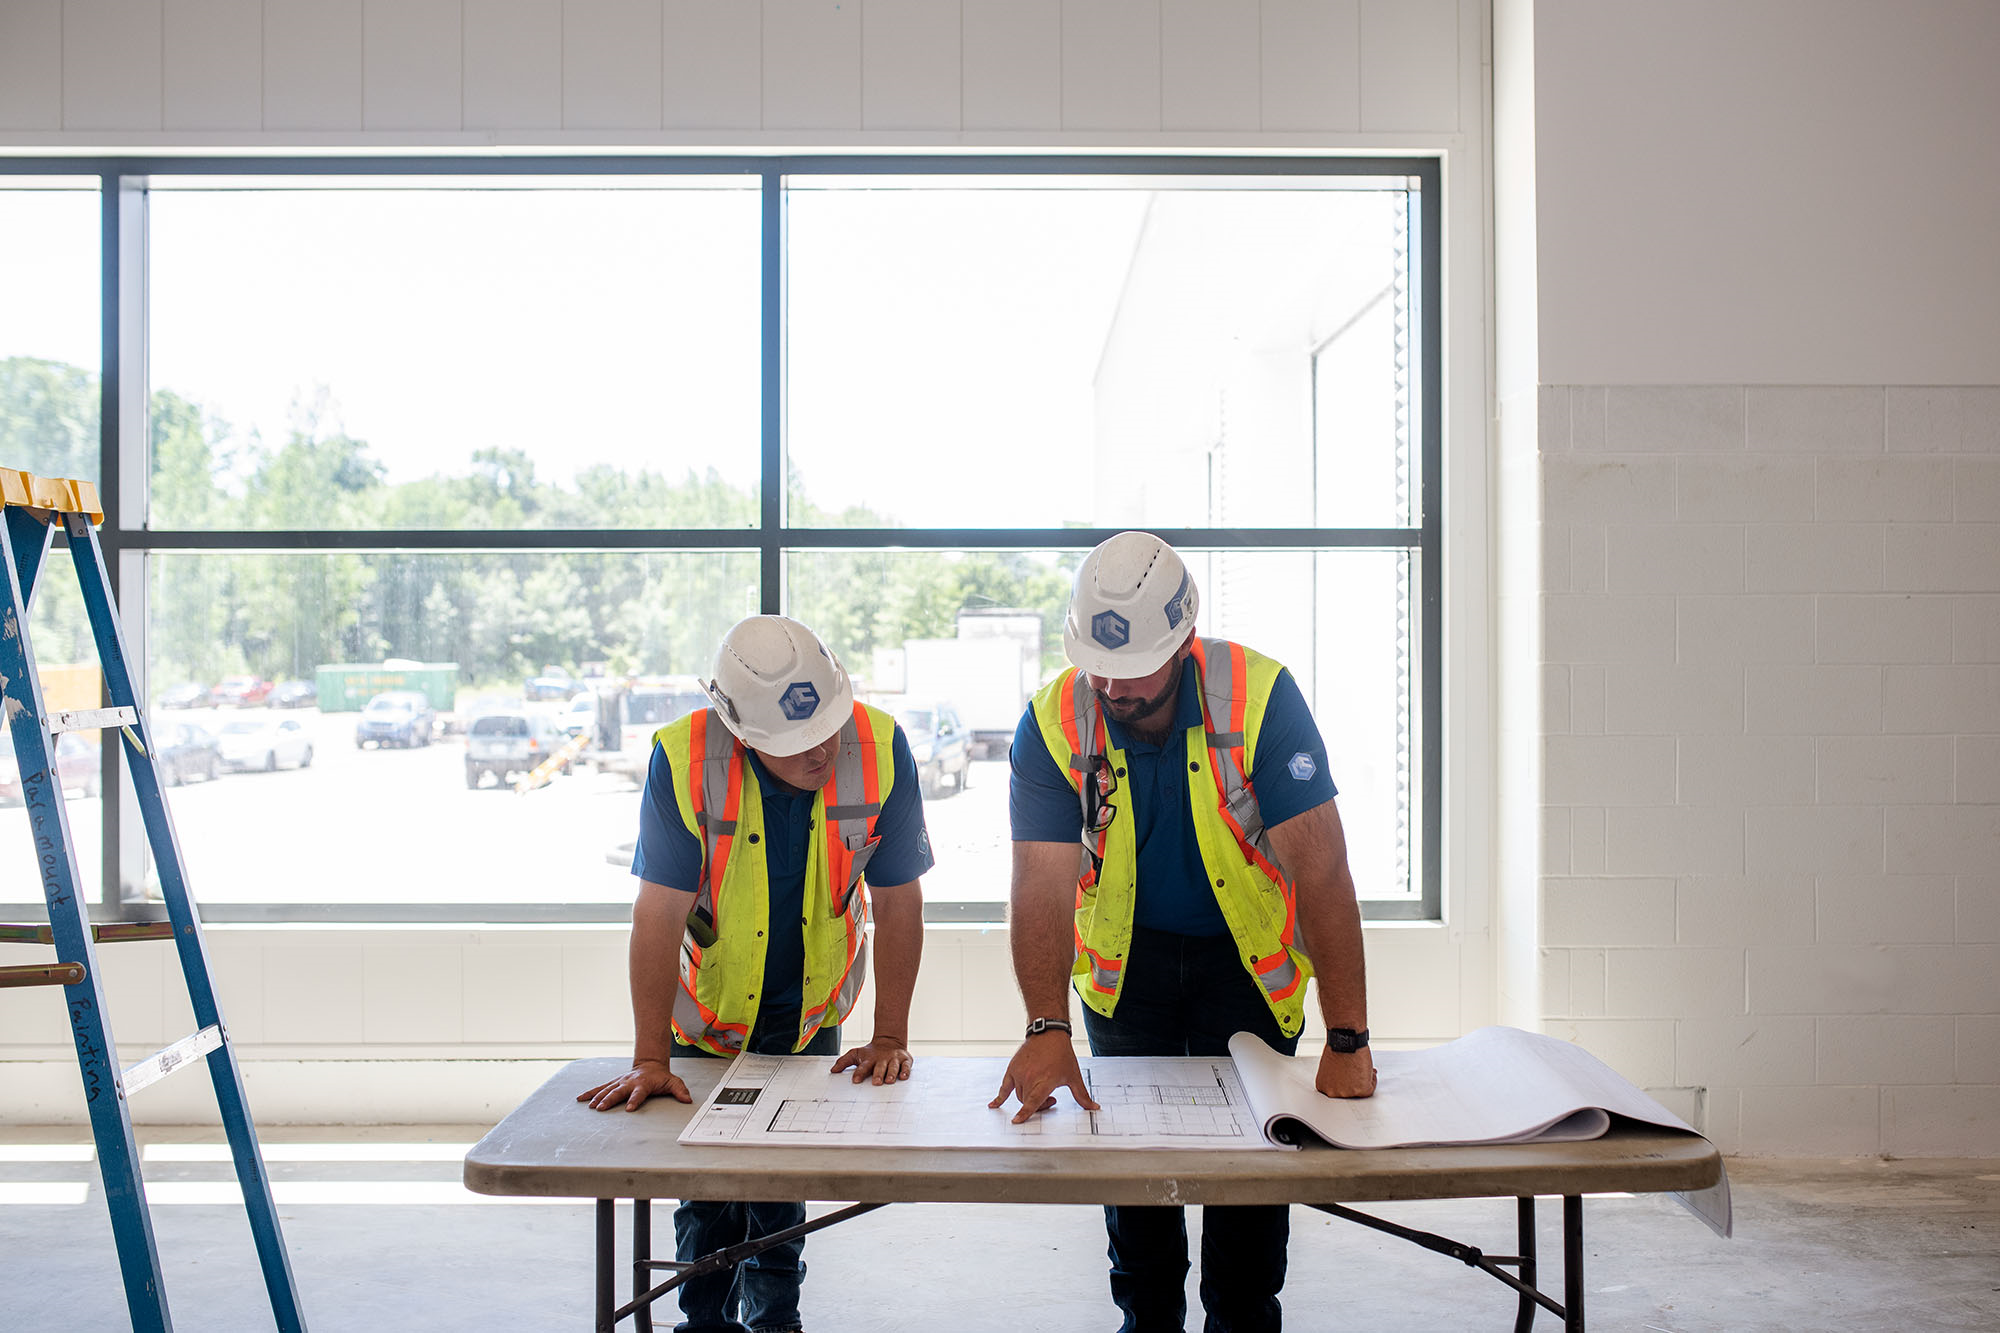 two construction workers leaning forward on a table looking at a blueprint with a large window in the background.